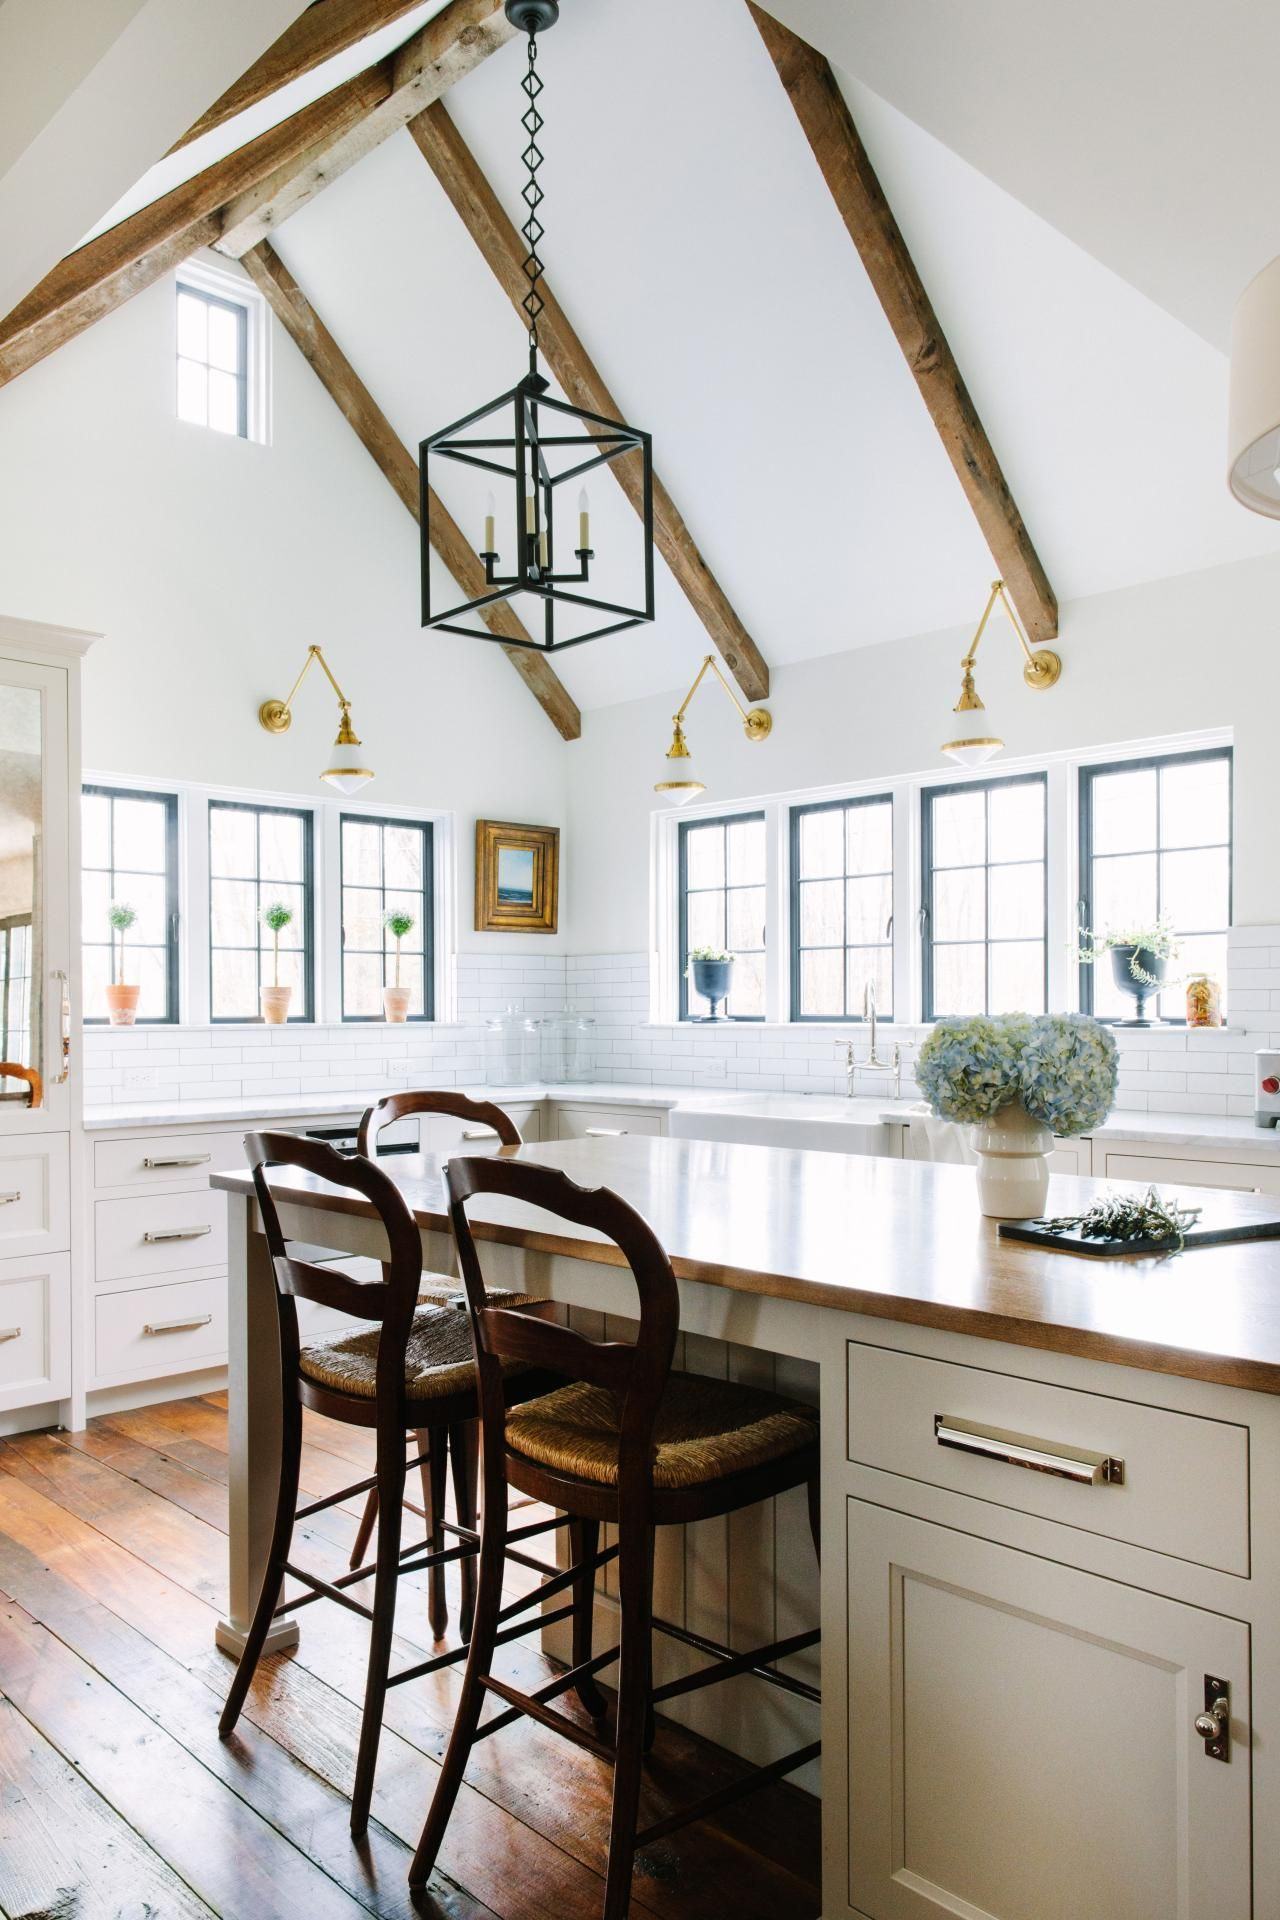 Kitchen Islands With Seating Pictures & Ideas From